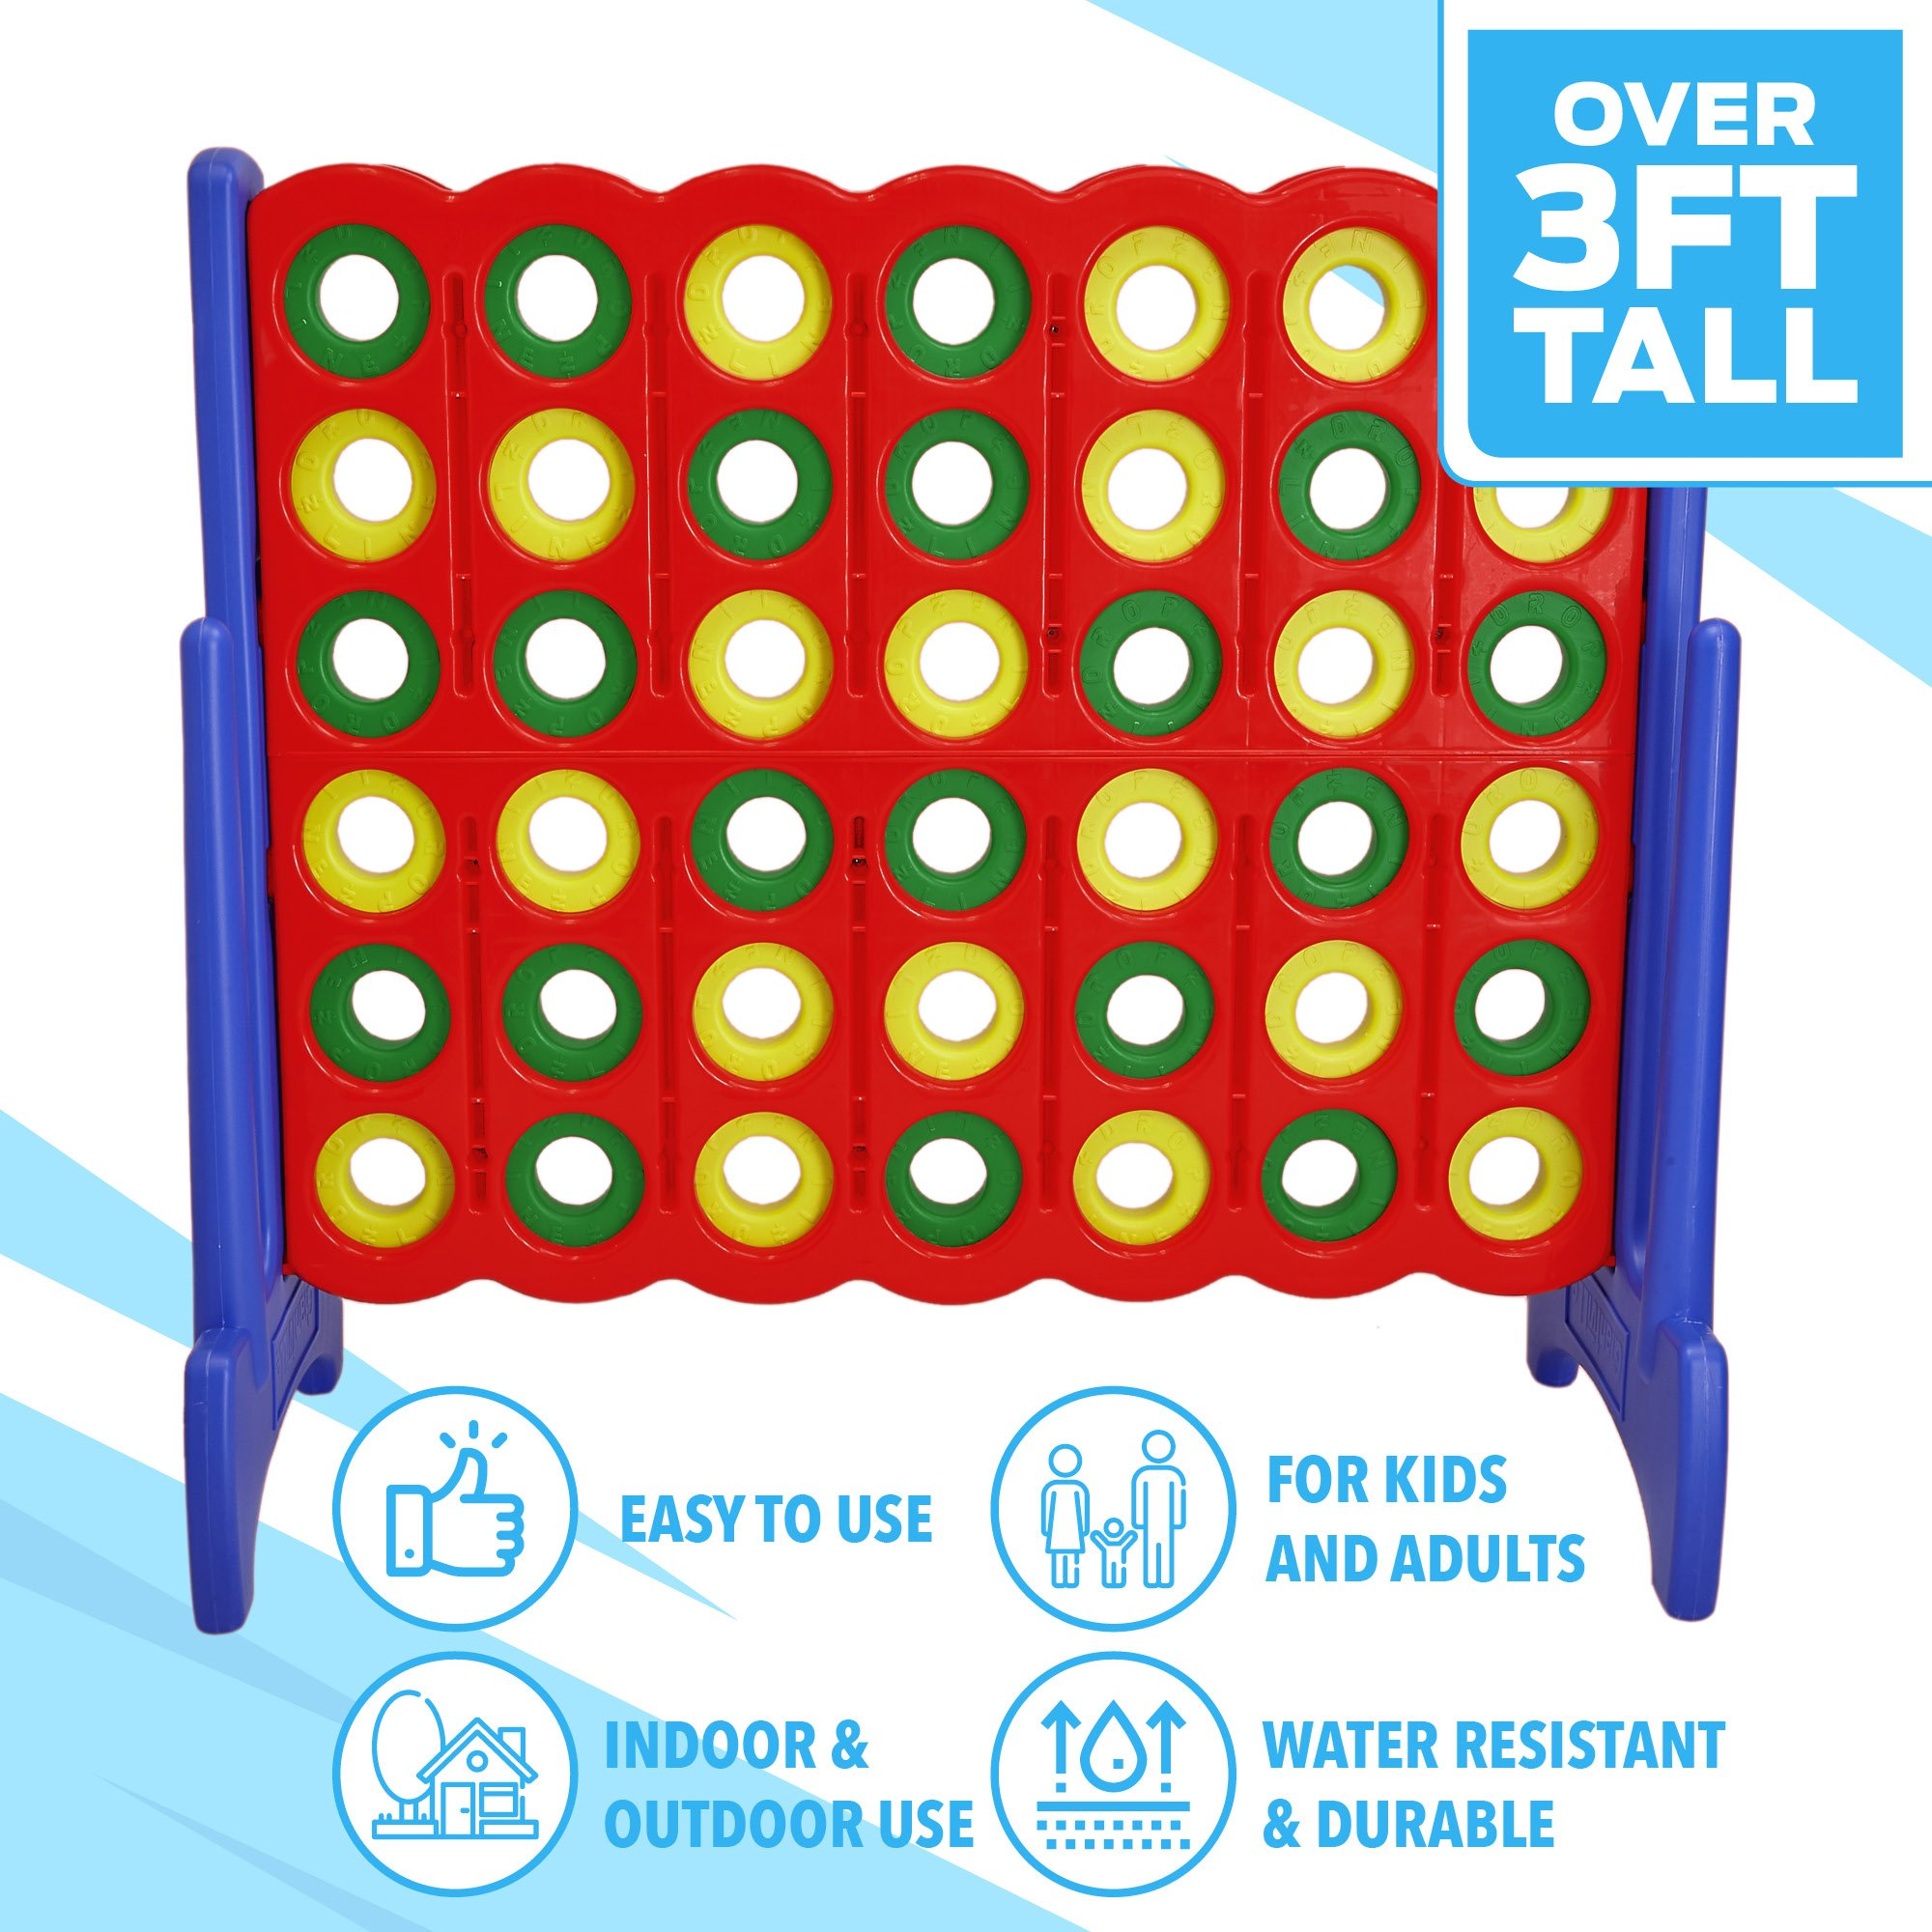 Giant 4 in a Row Connect Game - 4 Feet Wide by 3.5 Feet Tall Oversized Floor Activity for Kids and Adults - Jumbo Sized for Outdoor and Indoor Play - by Giantville, Blue/Red by Giantville (Image #3)